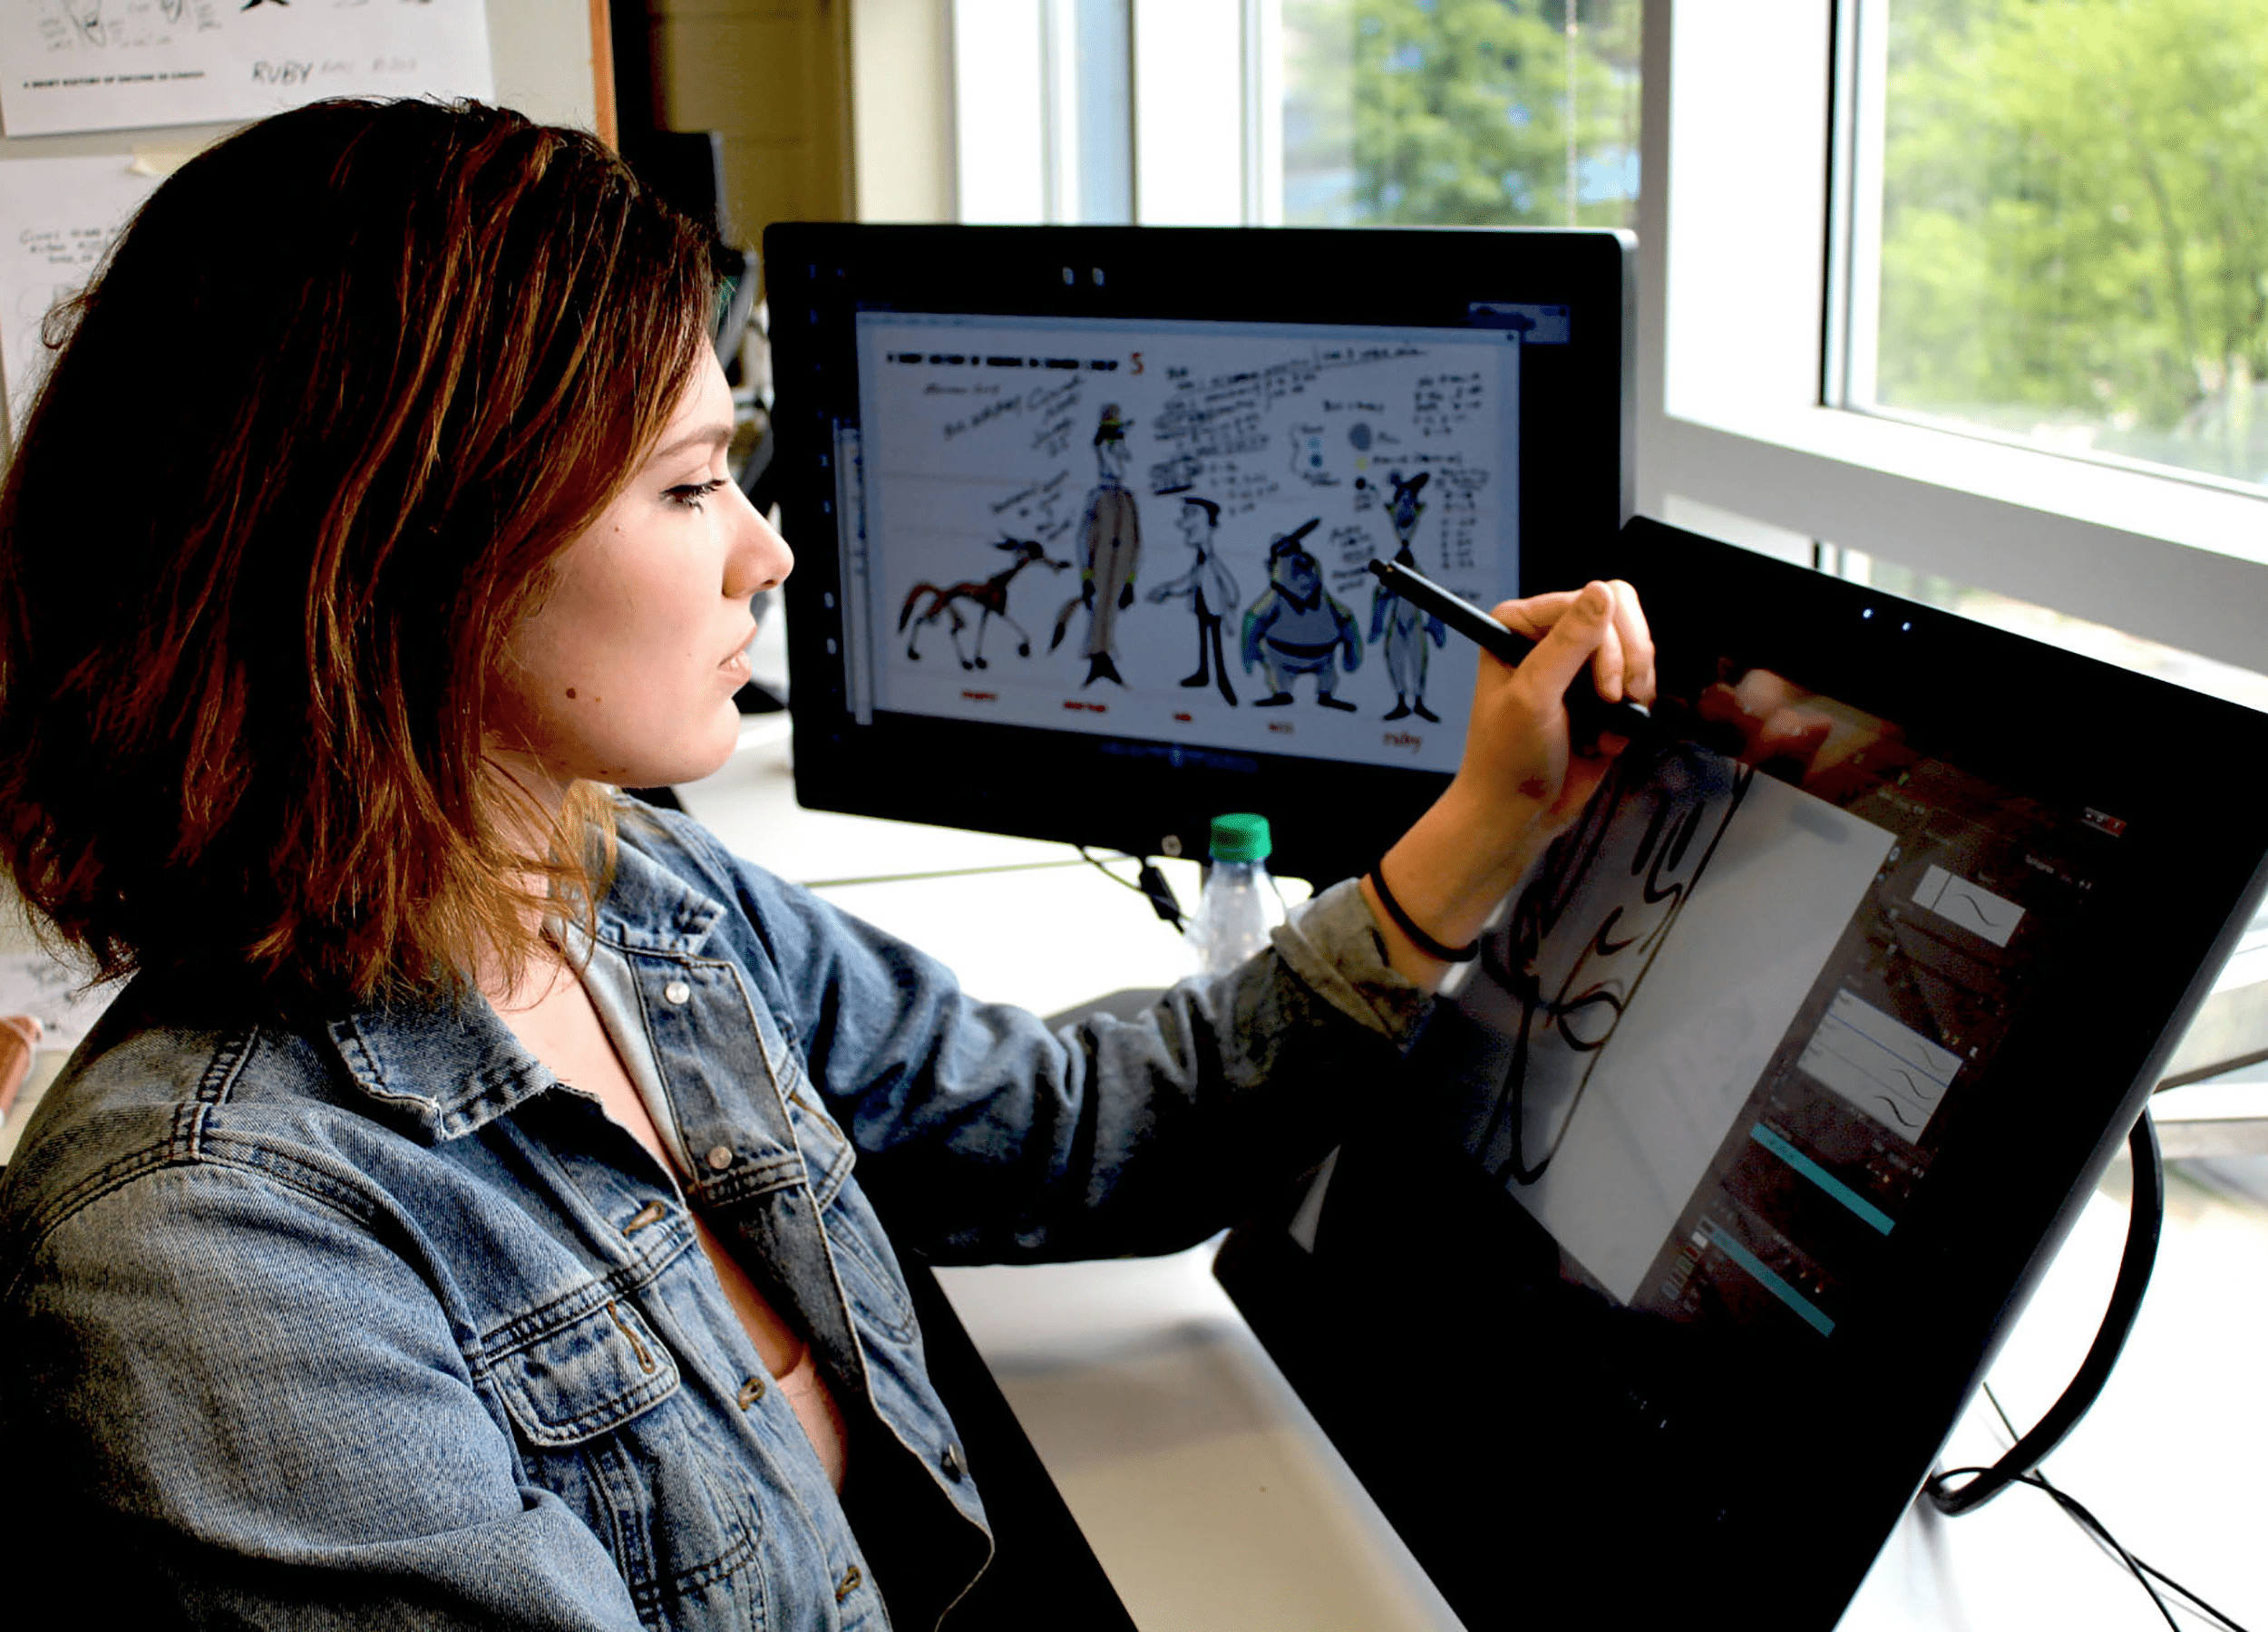 A student animating on a computer